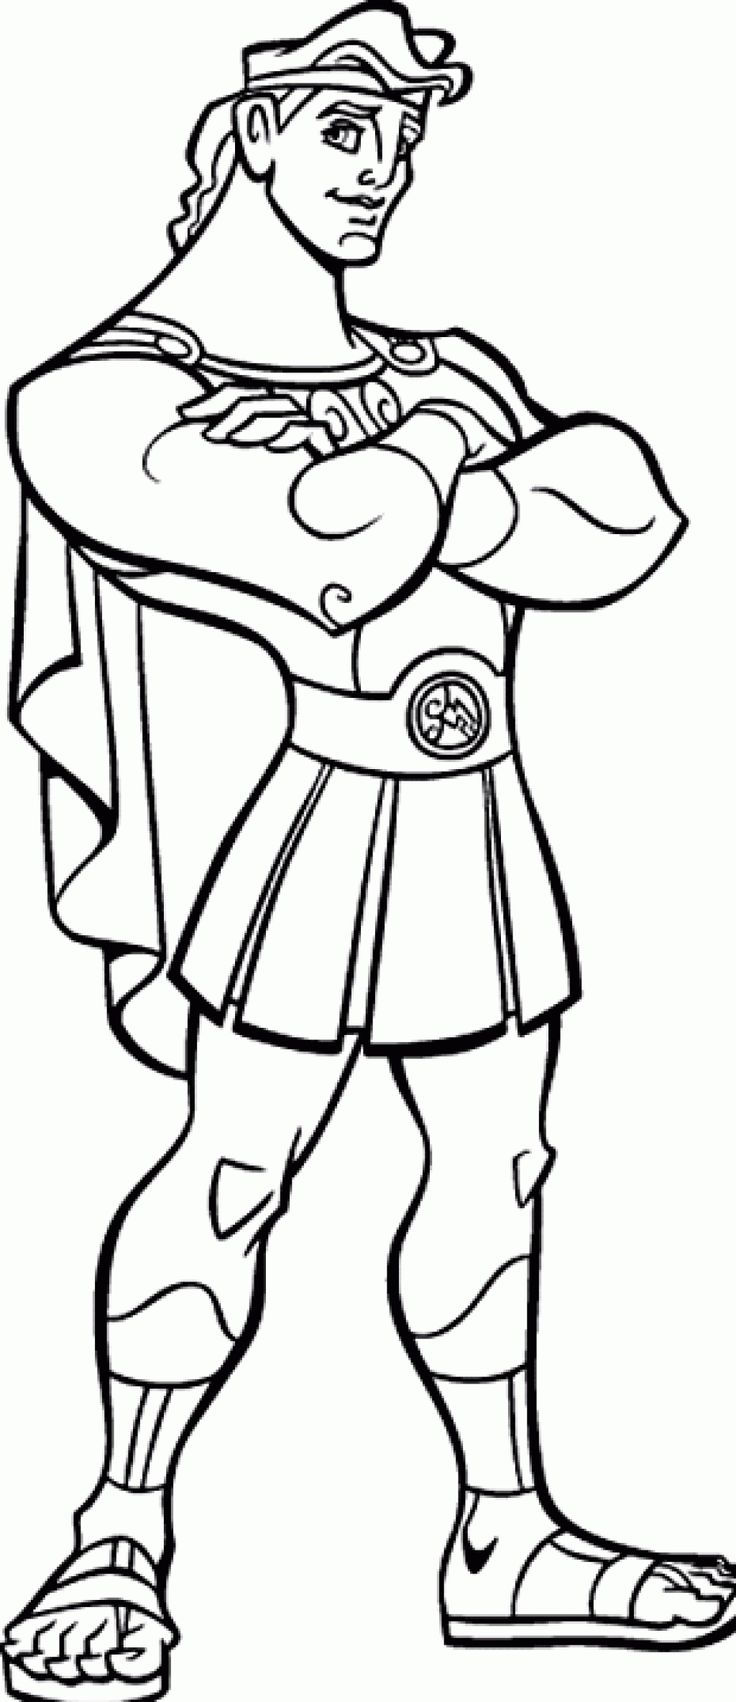 Disney hades coloring page - Disney Hades Coloring Page Hercules Folded Coloring Pages For Kids Printable Hercules Coloring Pages For